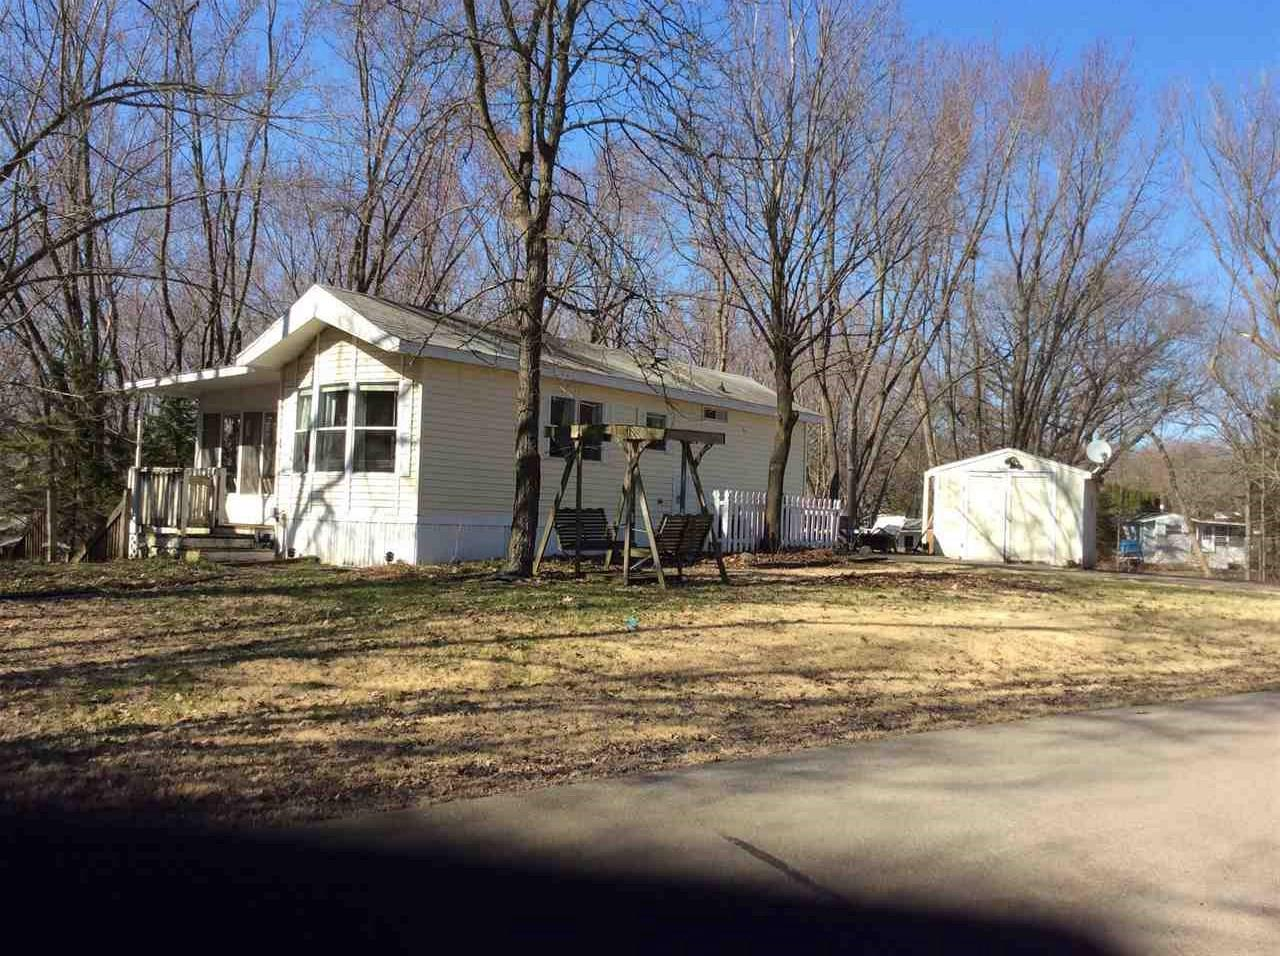 Hello Vacation! This cute 2 bedroom unit (with new carpet throughout) has the option to sleep more in the spacious, multi functioning 3 seasons room. Enjoy the fresh air from either of the covered porches. The patio is perfect to enjoy a fire on nice summer nights. This is unit is located within Rock River Leisure Estates on a beautiful lot, in a great location. You can enjoy all the amenities the park has to offer while riding on the GAS GOLF CART which is INCLUDED. Two pools, fishing pond, tennis courts, playground, Volleyball, horse shoes and more... Come check out this beautiful unit today so you can be in it by spring!